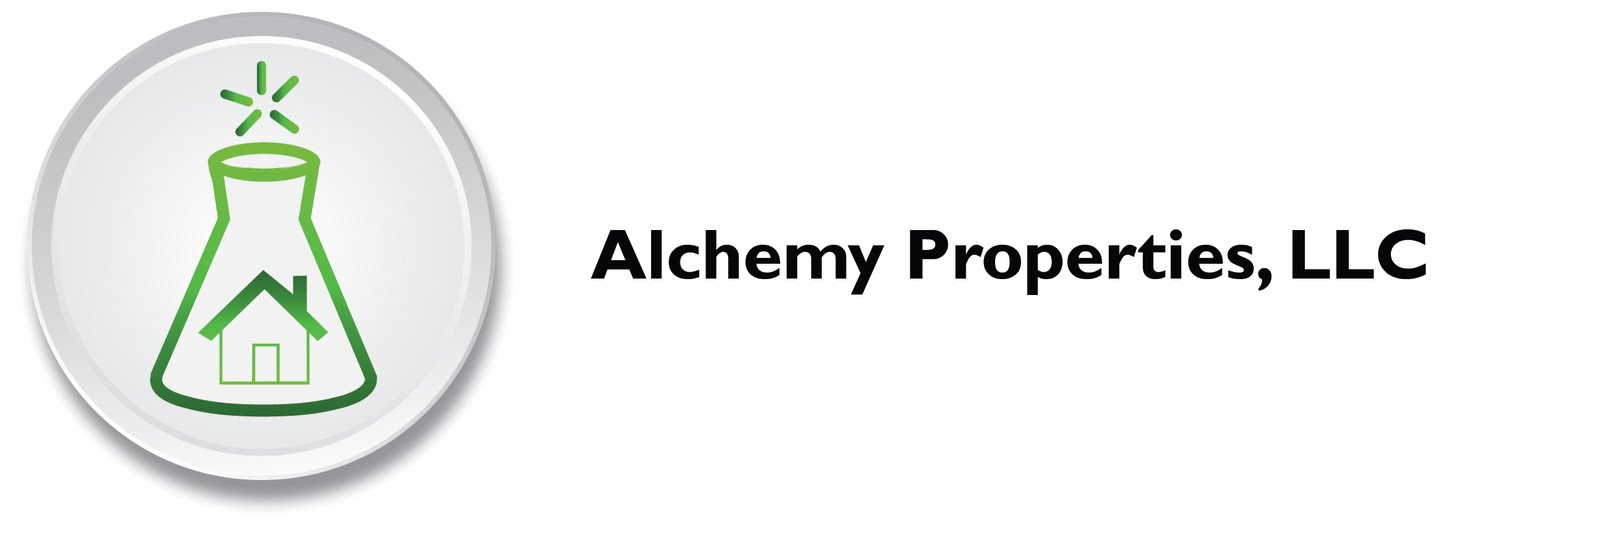 Alchemy Properties, LLC